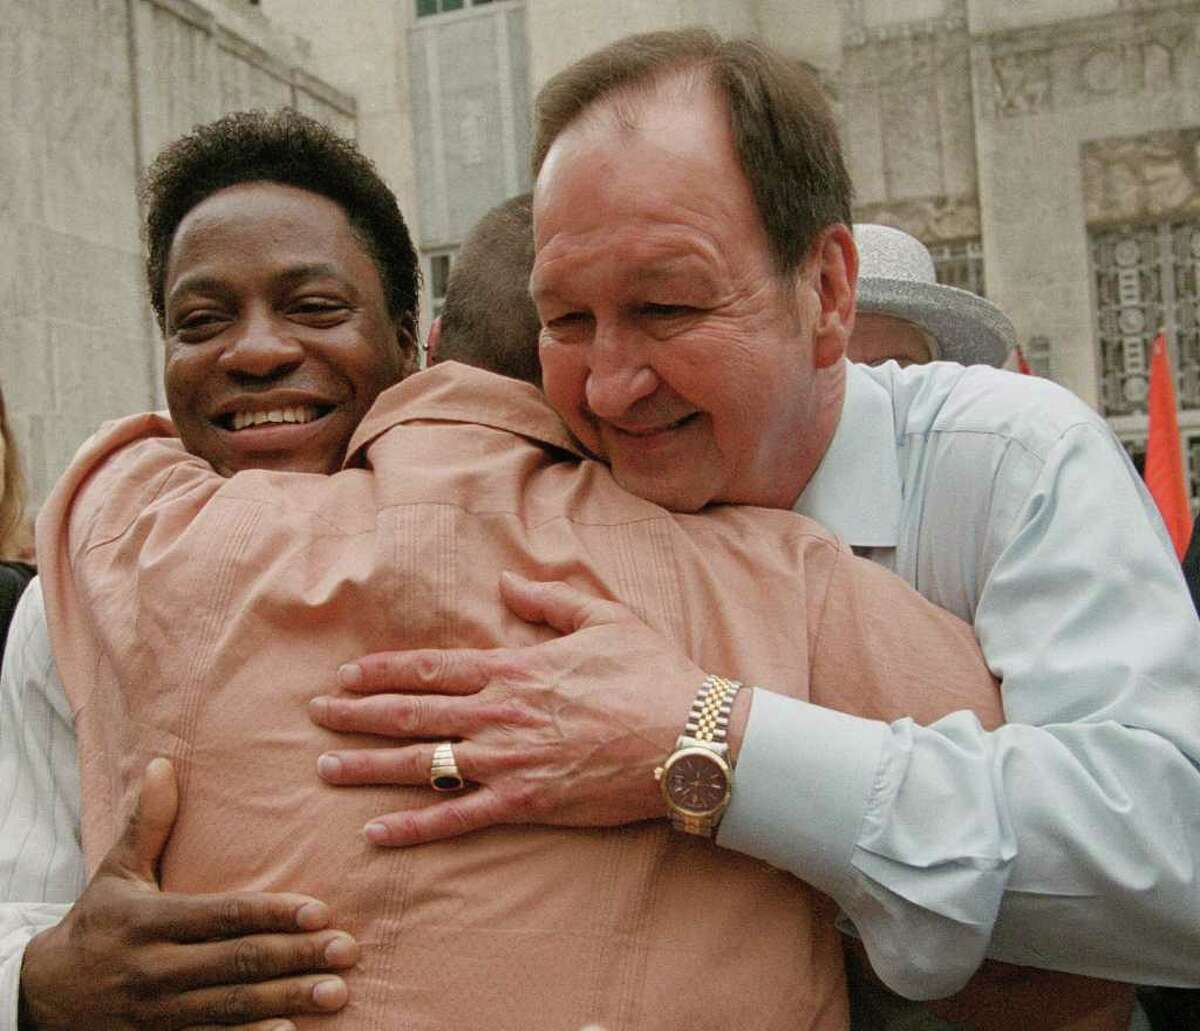 Tyron Garner, left, and John Geddes Lawrence, right, are hugged by a well wisher after a rally at Houston City Hall on June 26, 2003, held to celebrate the Supreme Court ruling striking down a Texas law that bans gay sex acts.